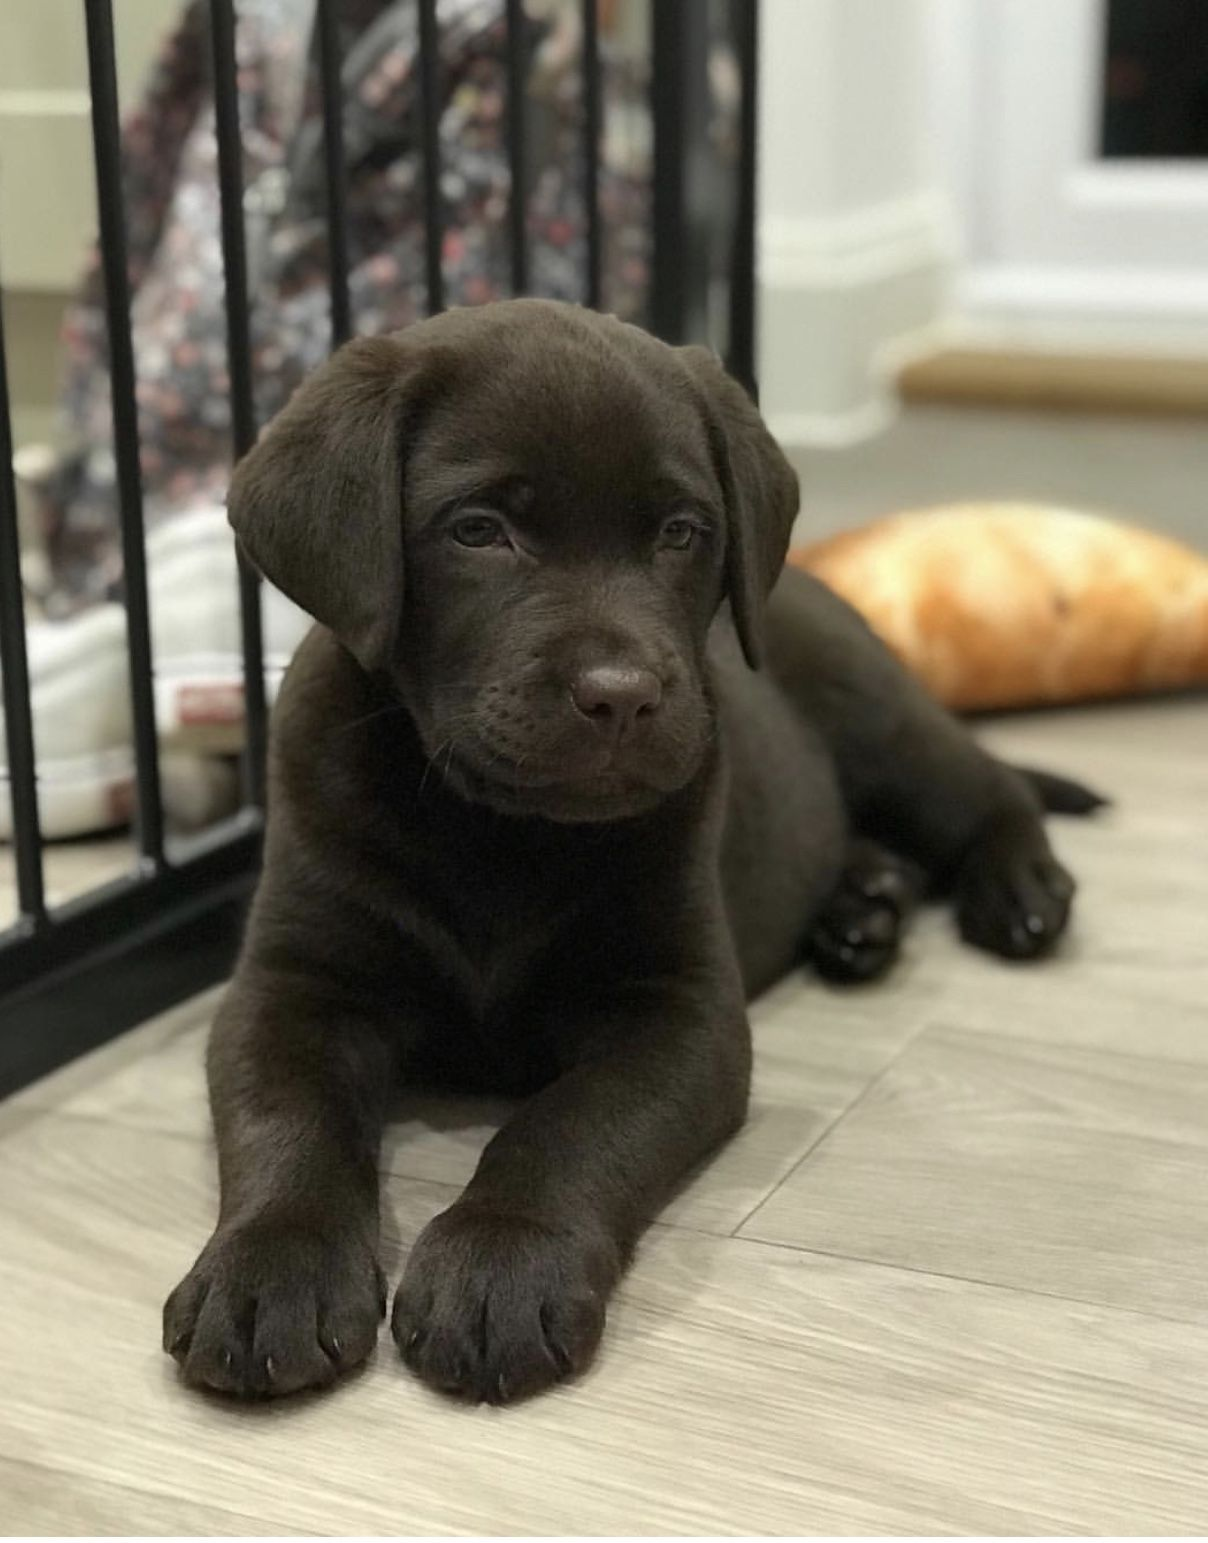 A 8 Week Old Chocolate Labrador Called Sully From Norfolk Follow Him On Instagram For Regular Pupdates Labrador Puppy Labrador Puppy Training Smart Dog